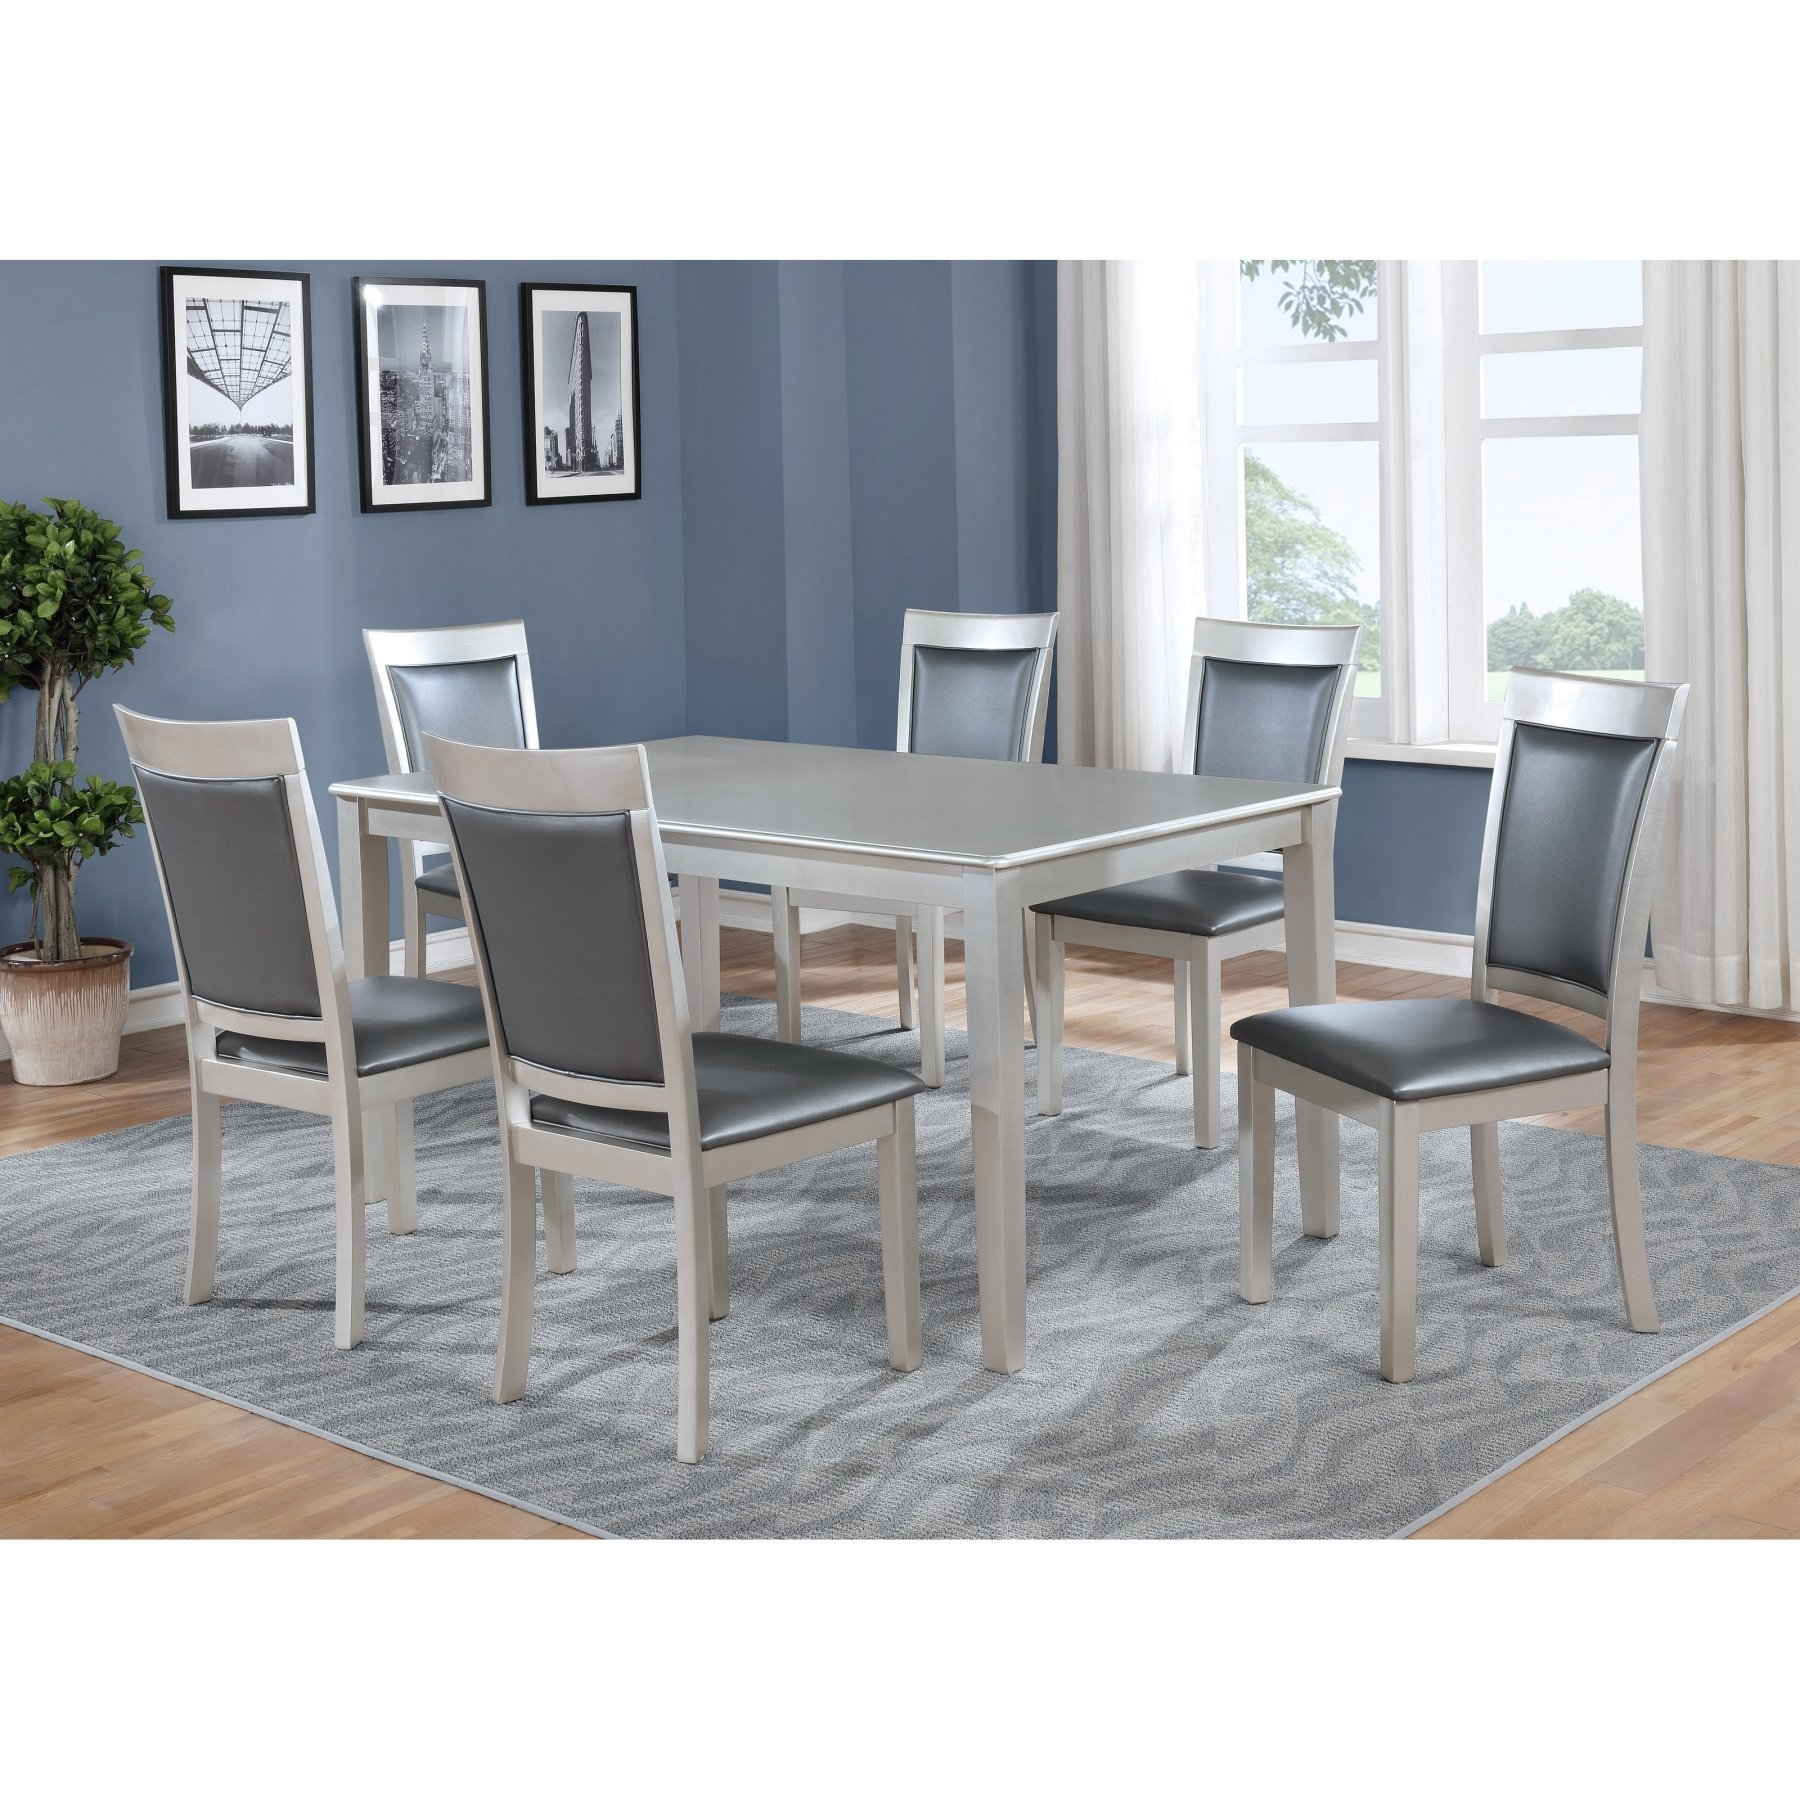 Roundhill Furniture Avignor 7 Piece Contemporary Dining Table Set In For 2018 Market 7 Piece Counter Sets (Image 19 of 20)